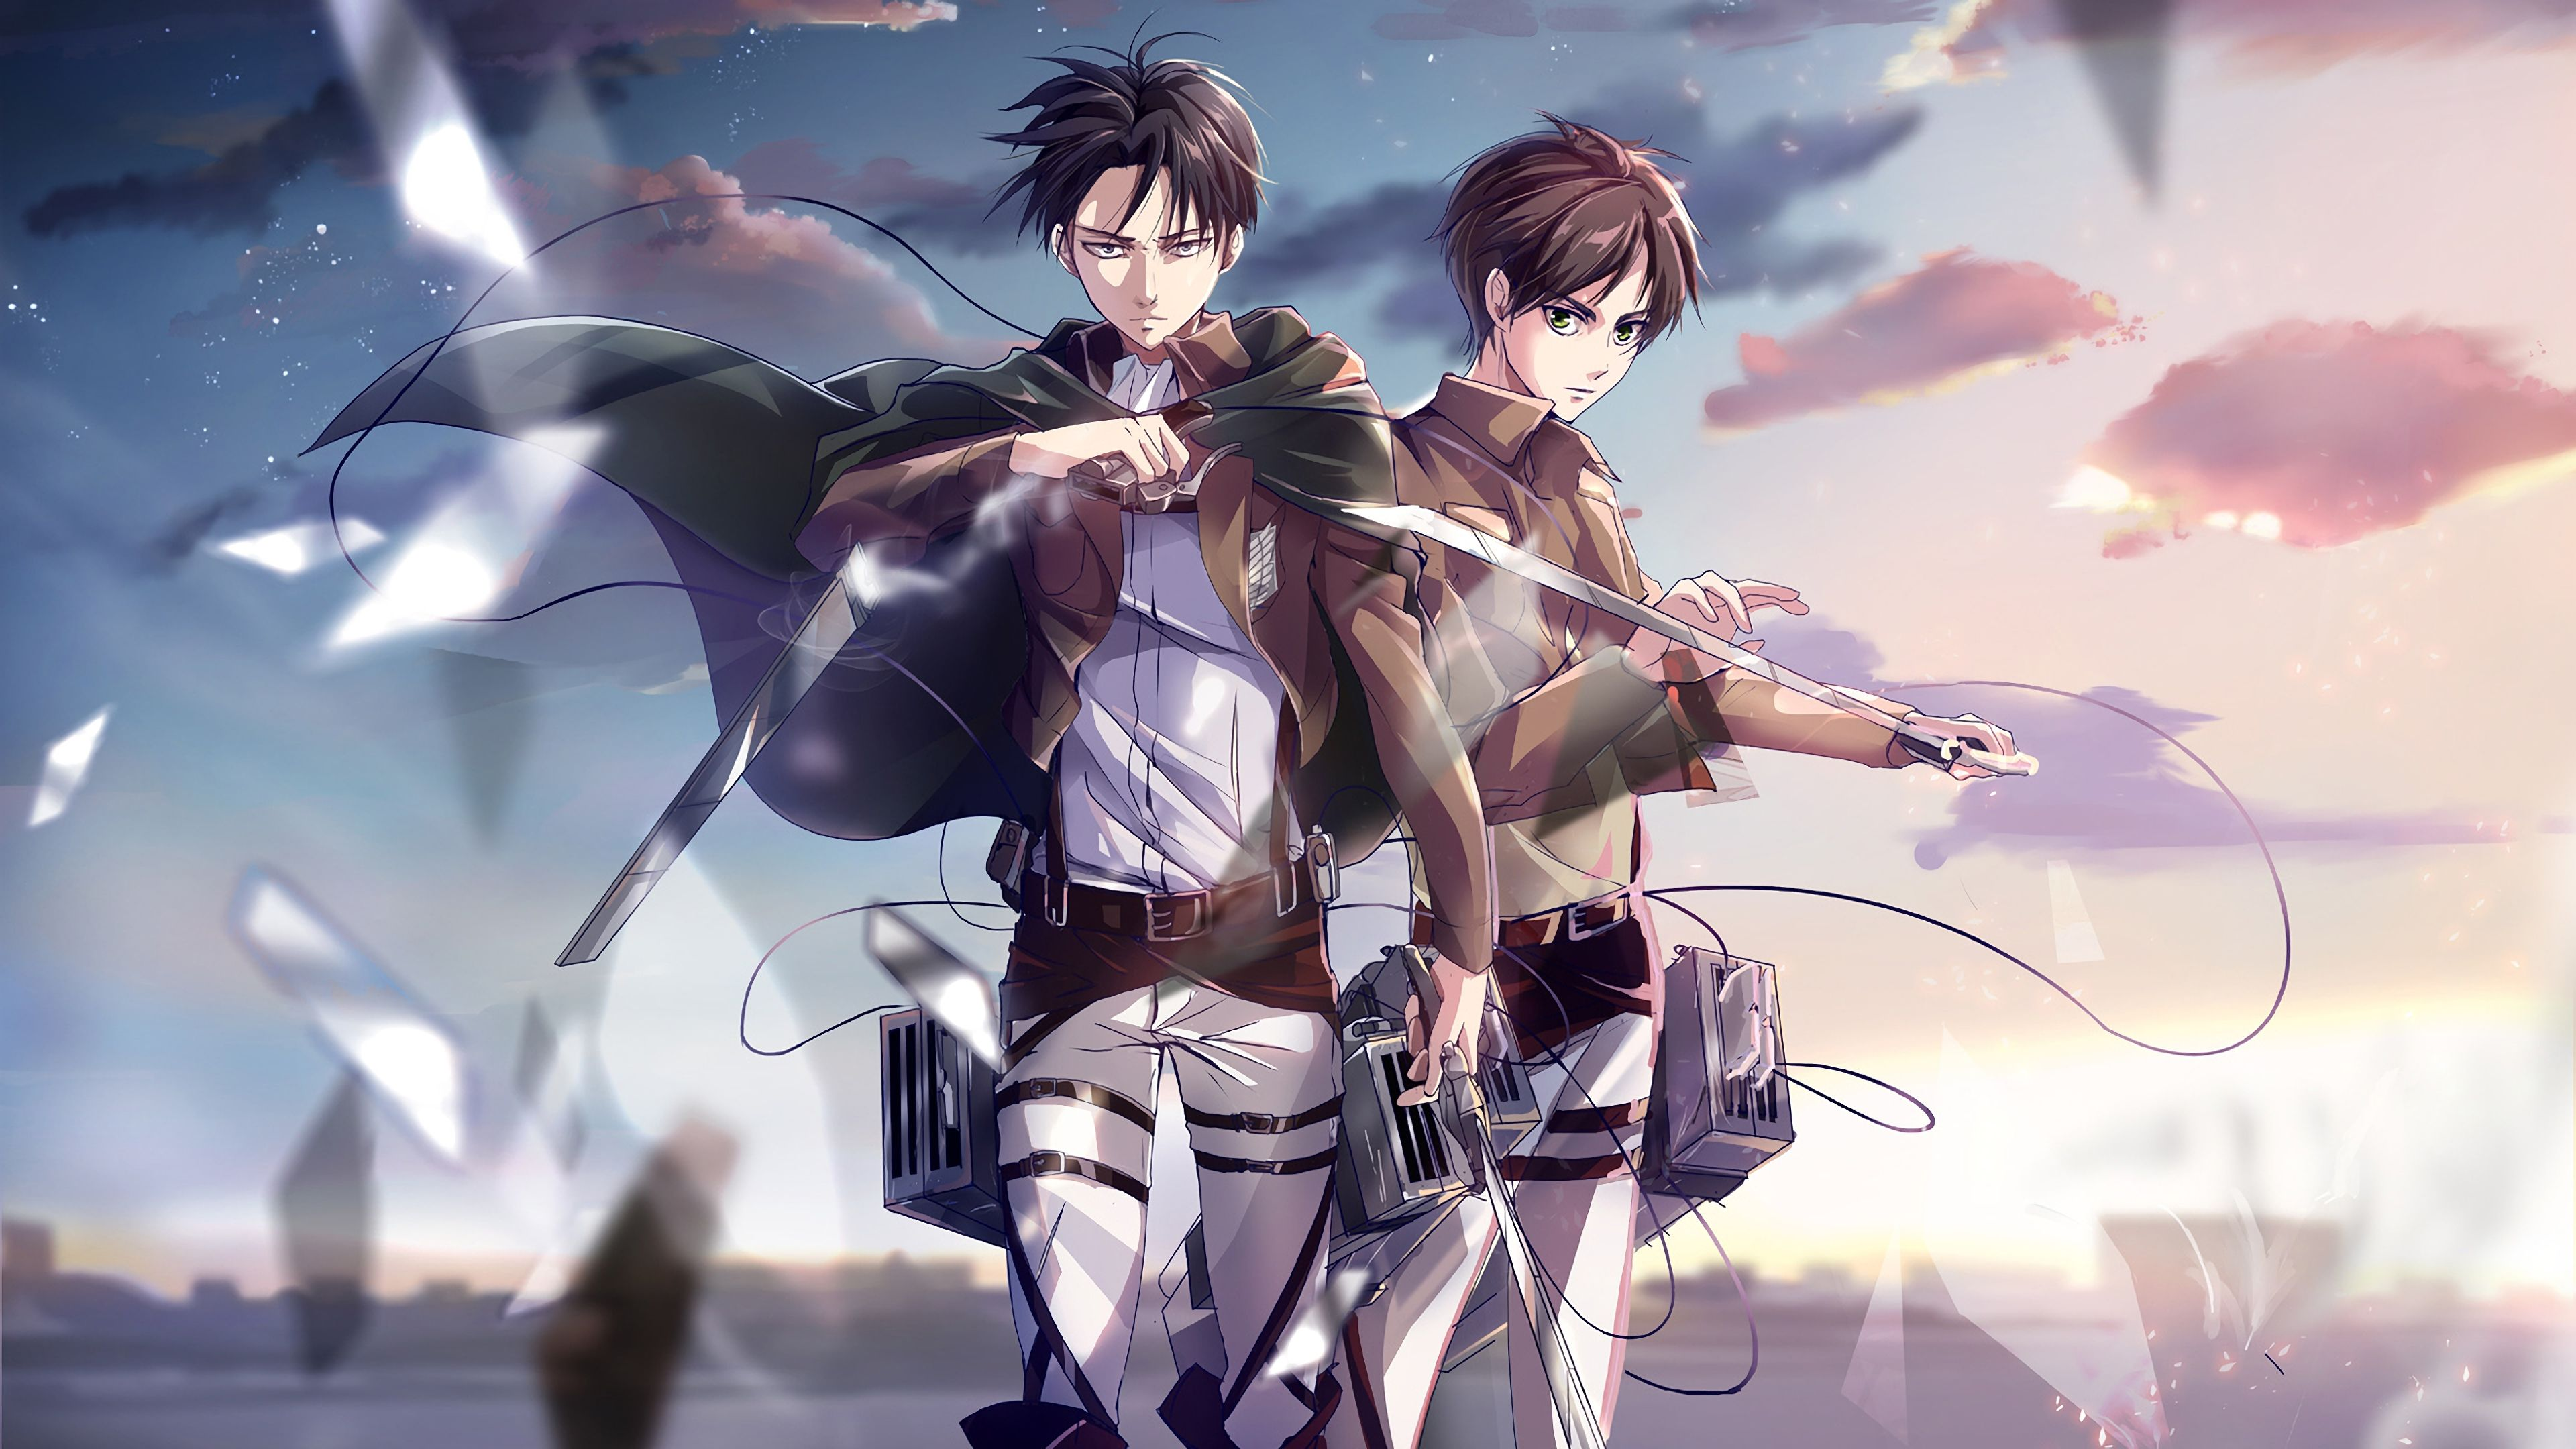 It can be exceptionally beautiful and interesting, extraordinarily complex and also minimalistic. Attack On Titan Anime 4k PC Wallpapers - Wallpaper Cave